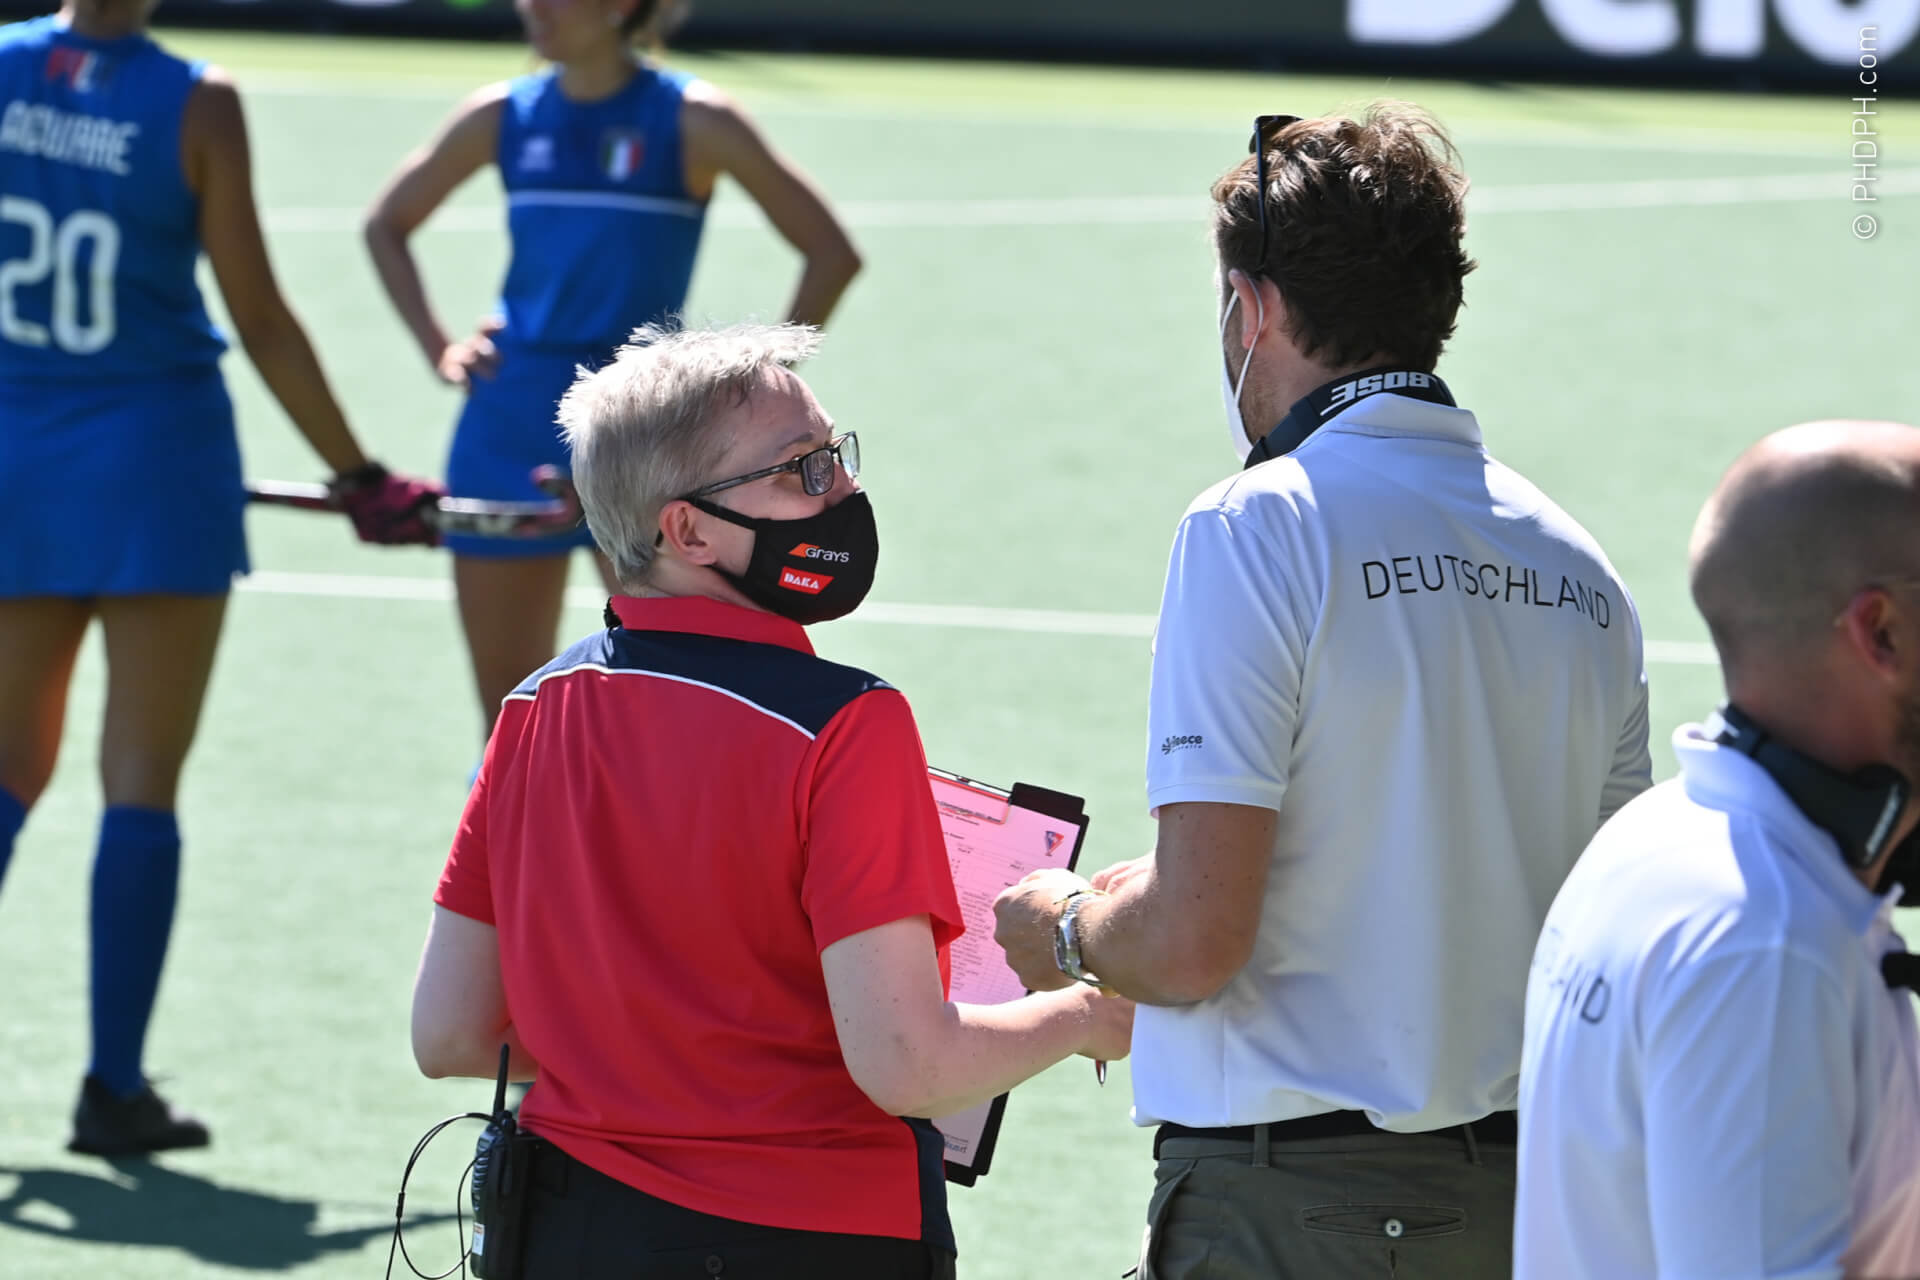 AMSTELVEEN, THE NETHERLANDS - JUNE 9 :  pictured during the Women's Euro Hockey championship 2021 between Germany v Italy on June 09, 2021 in Amstelveen, The Netherlands, 09/06/2021  Photo by PHDPH